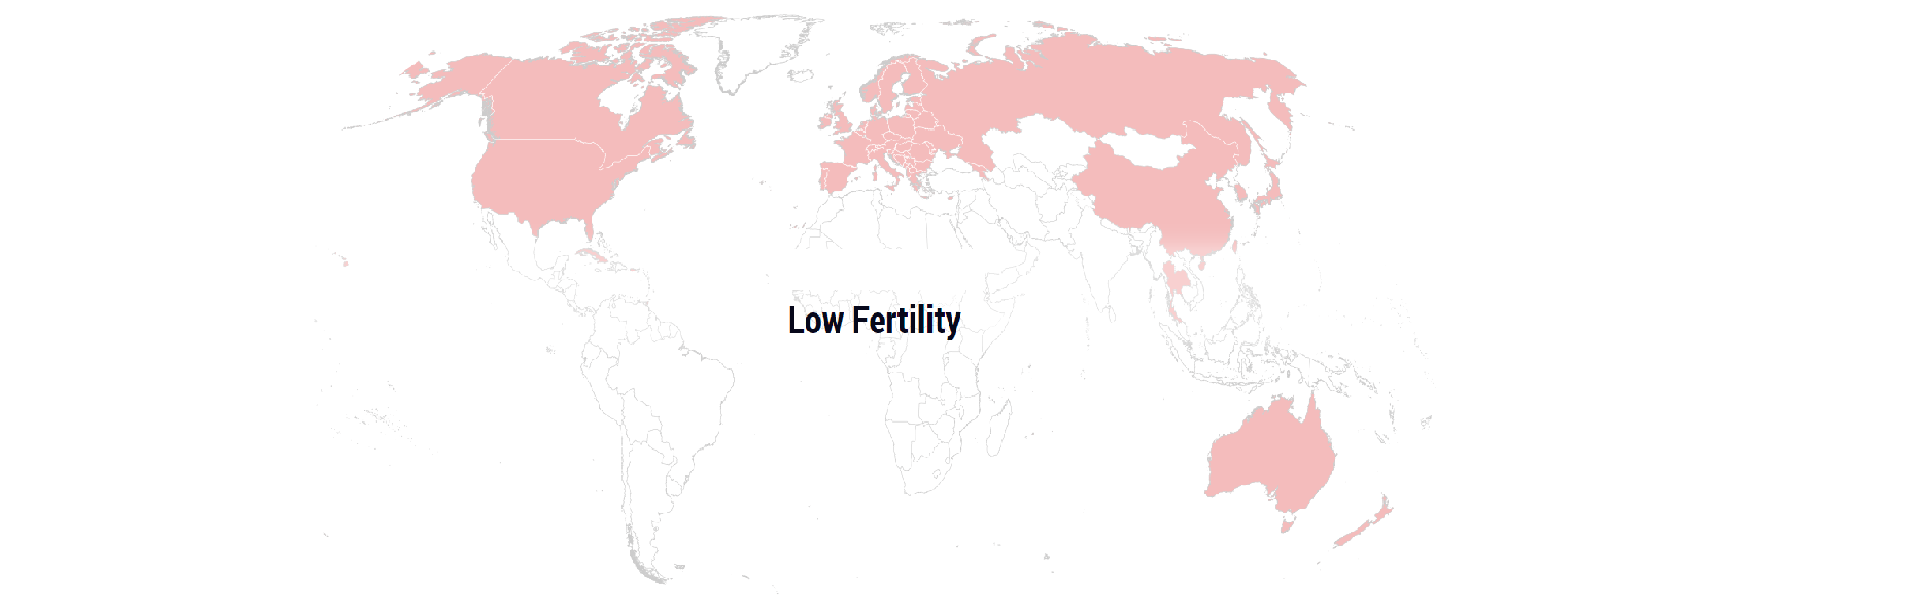 low fertility 2018